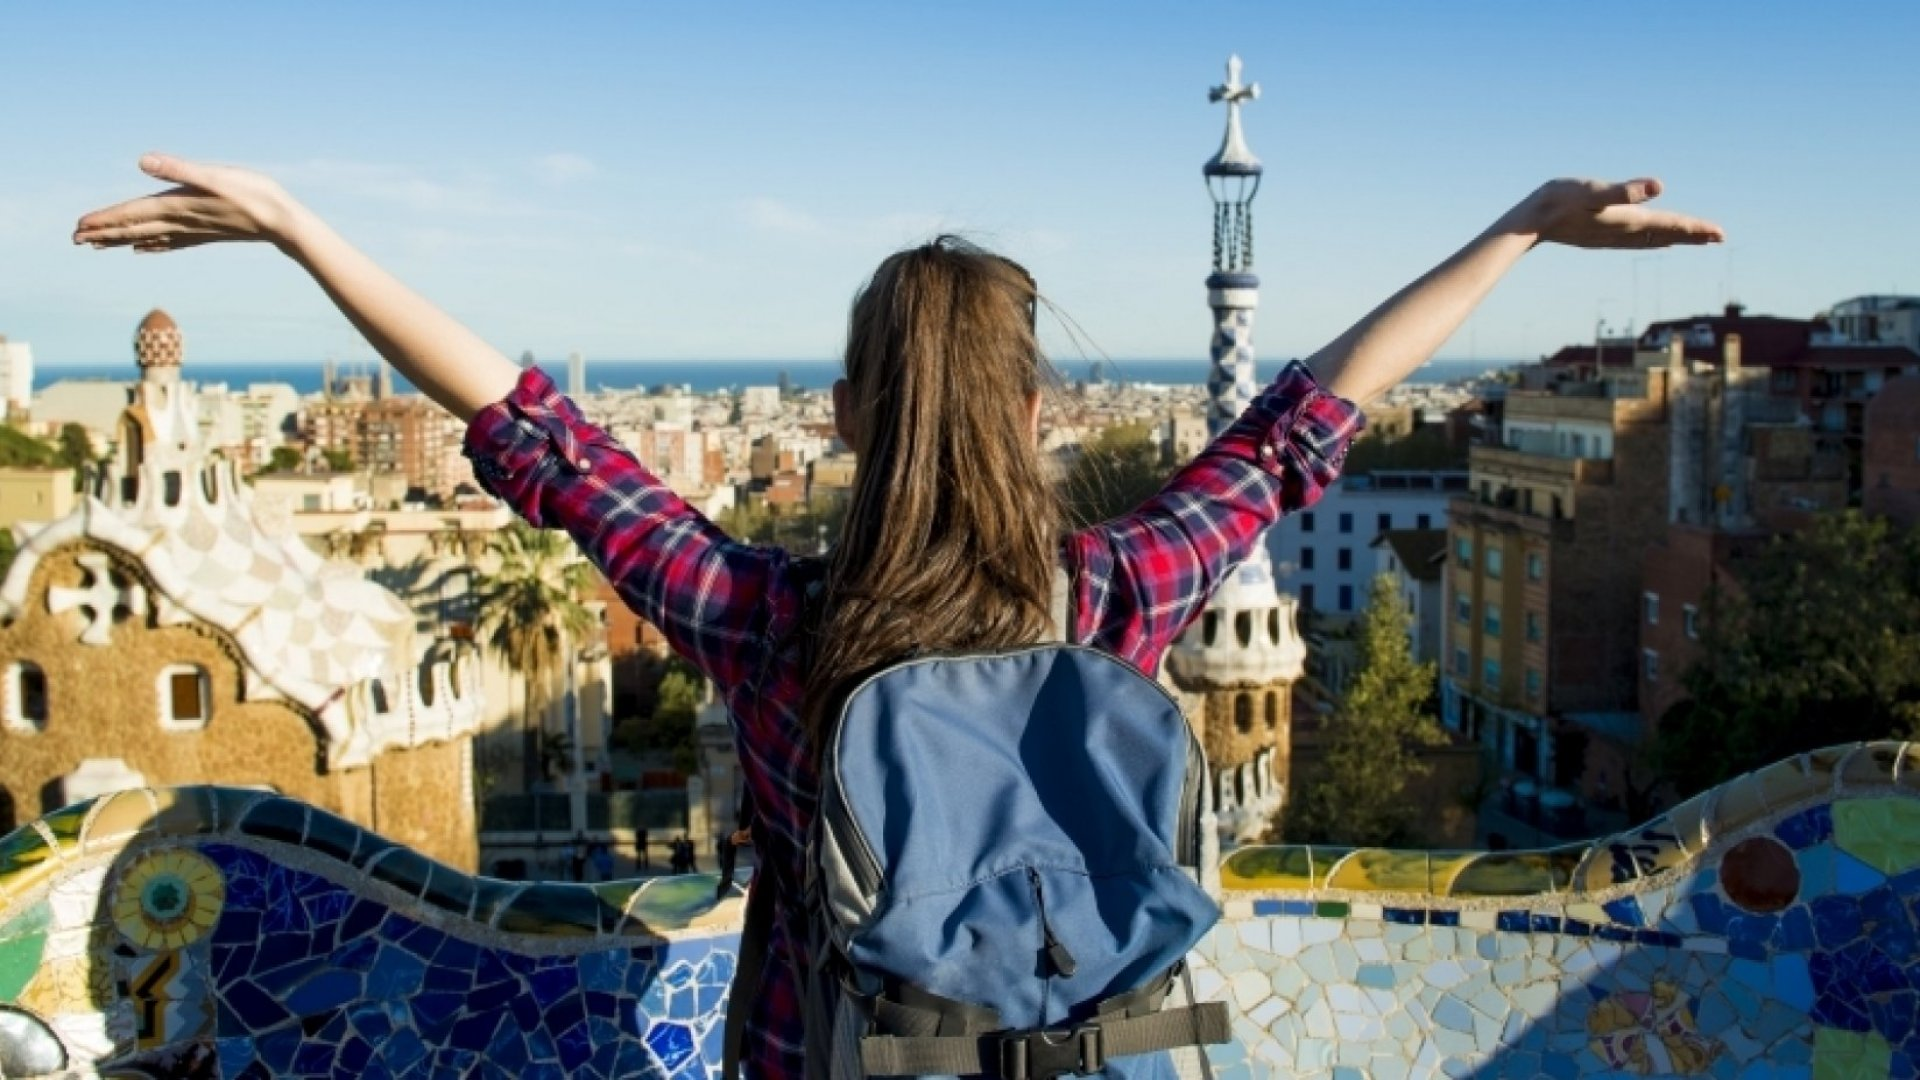 10 Reasons It's a Great Idea to Start Your Career Working Abroad